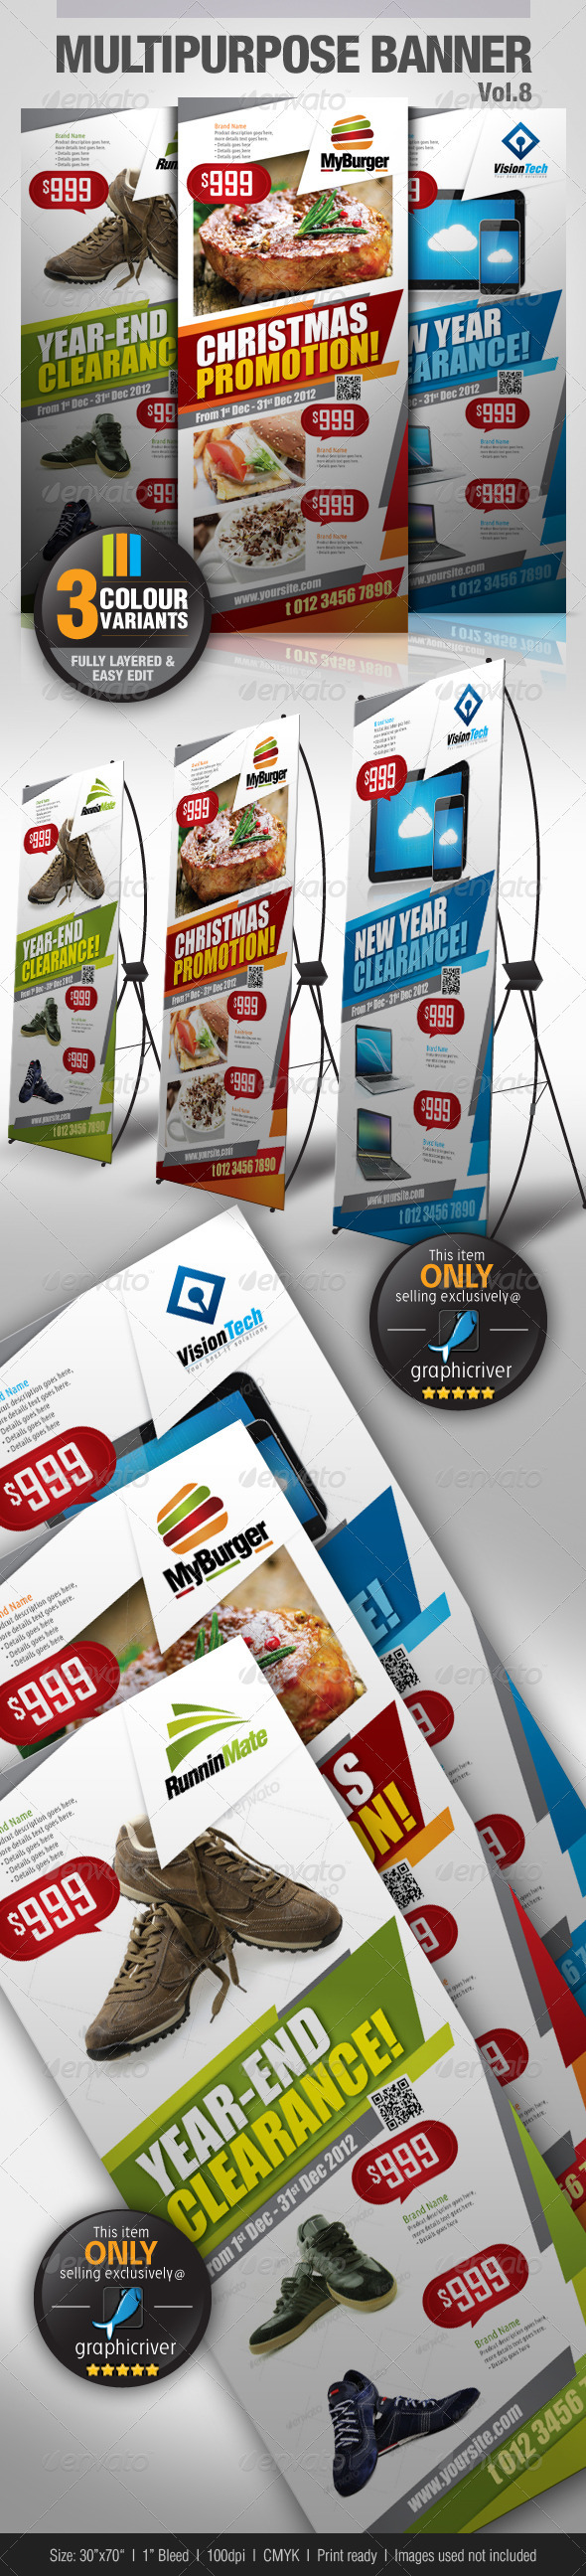 GraphicRiver Multipurpose Promotional Banner Vol.8 3592694